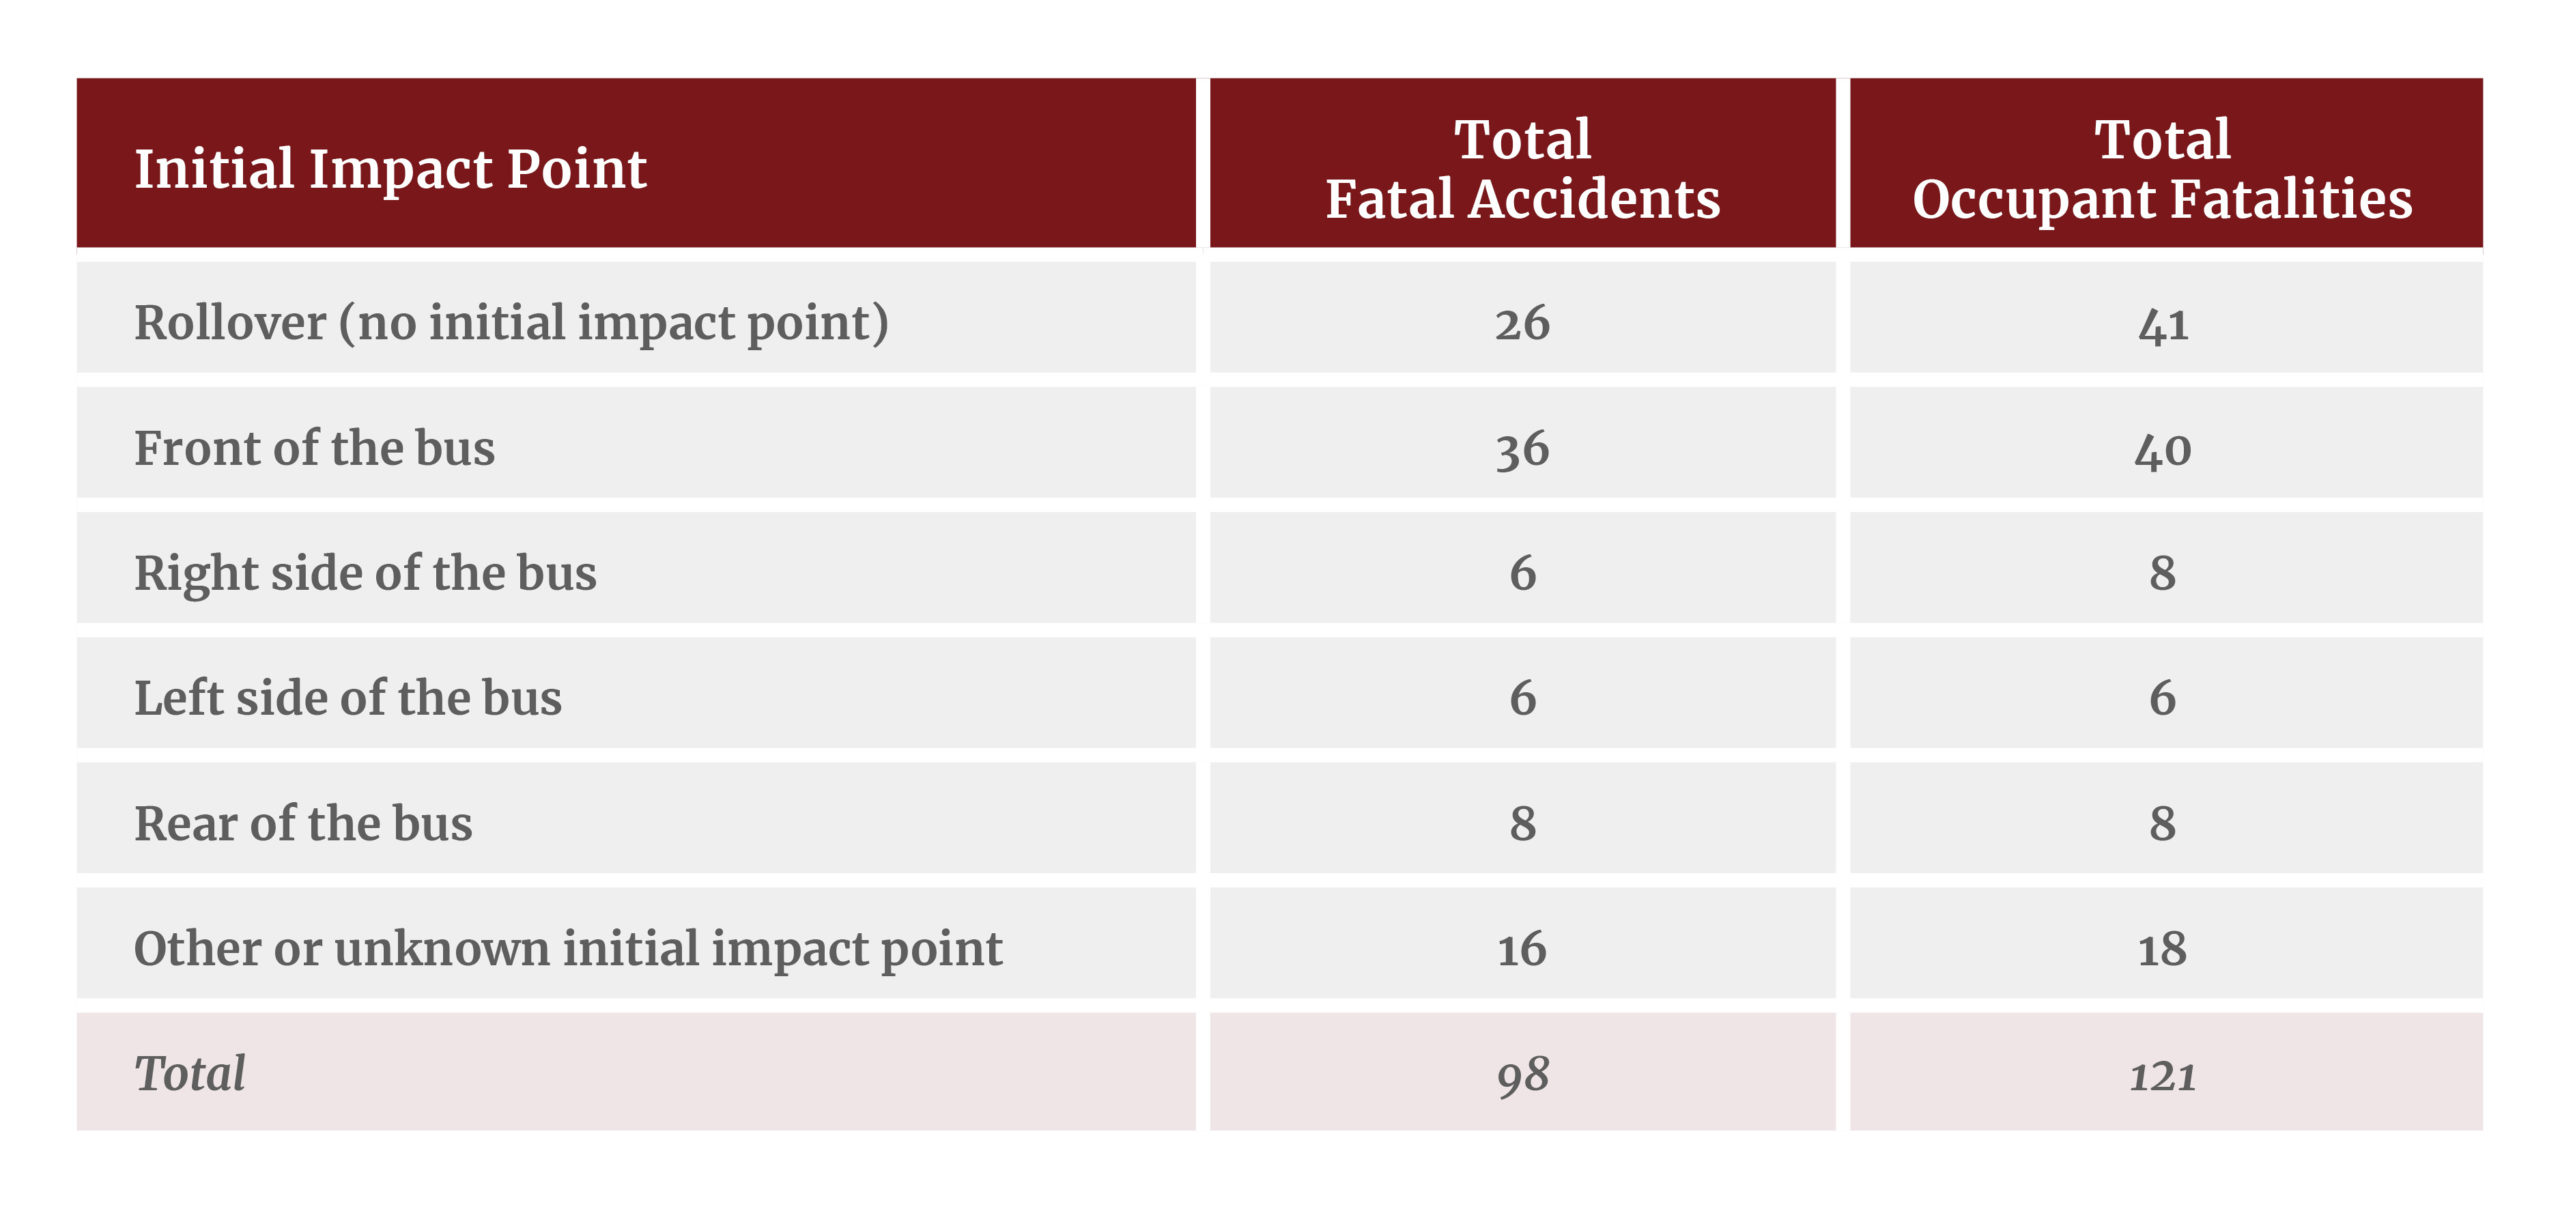 Initial impact points